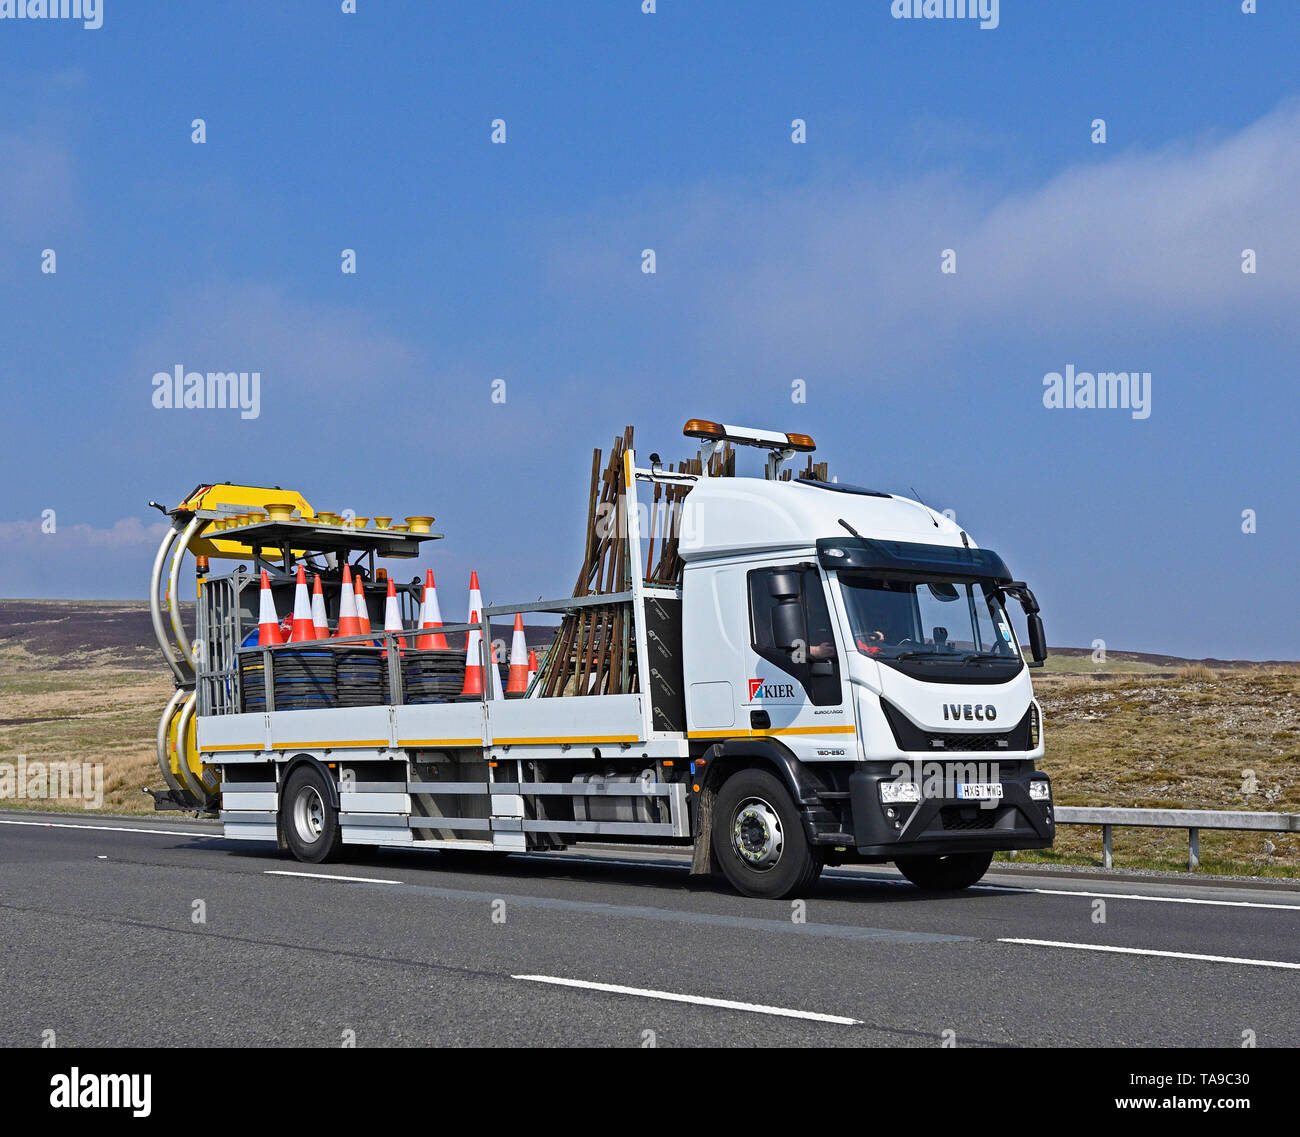 Kier Group Truck with load of traffic cones. M6 Motorway, Southbound, Shap, Cumbria, England, United Kingdom, Europe. - Stock Image